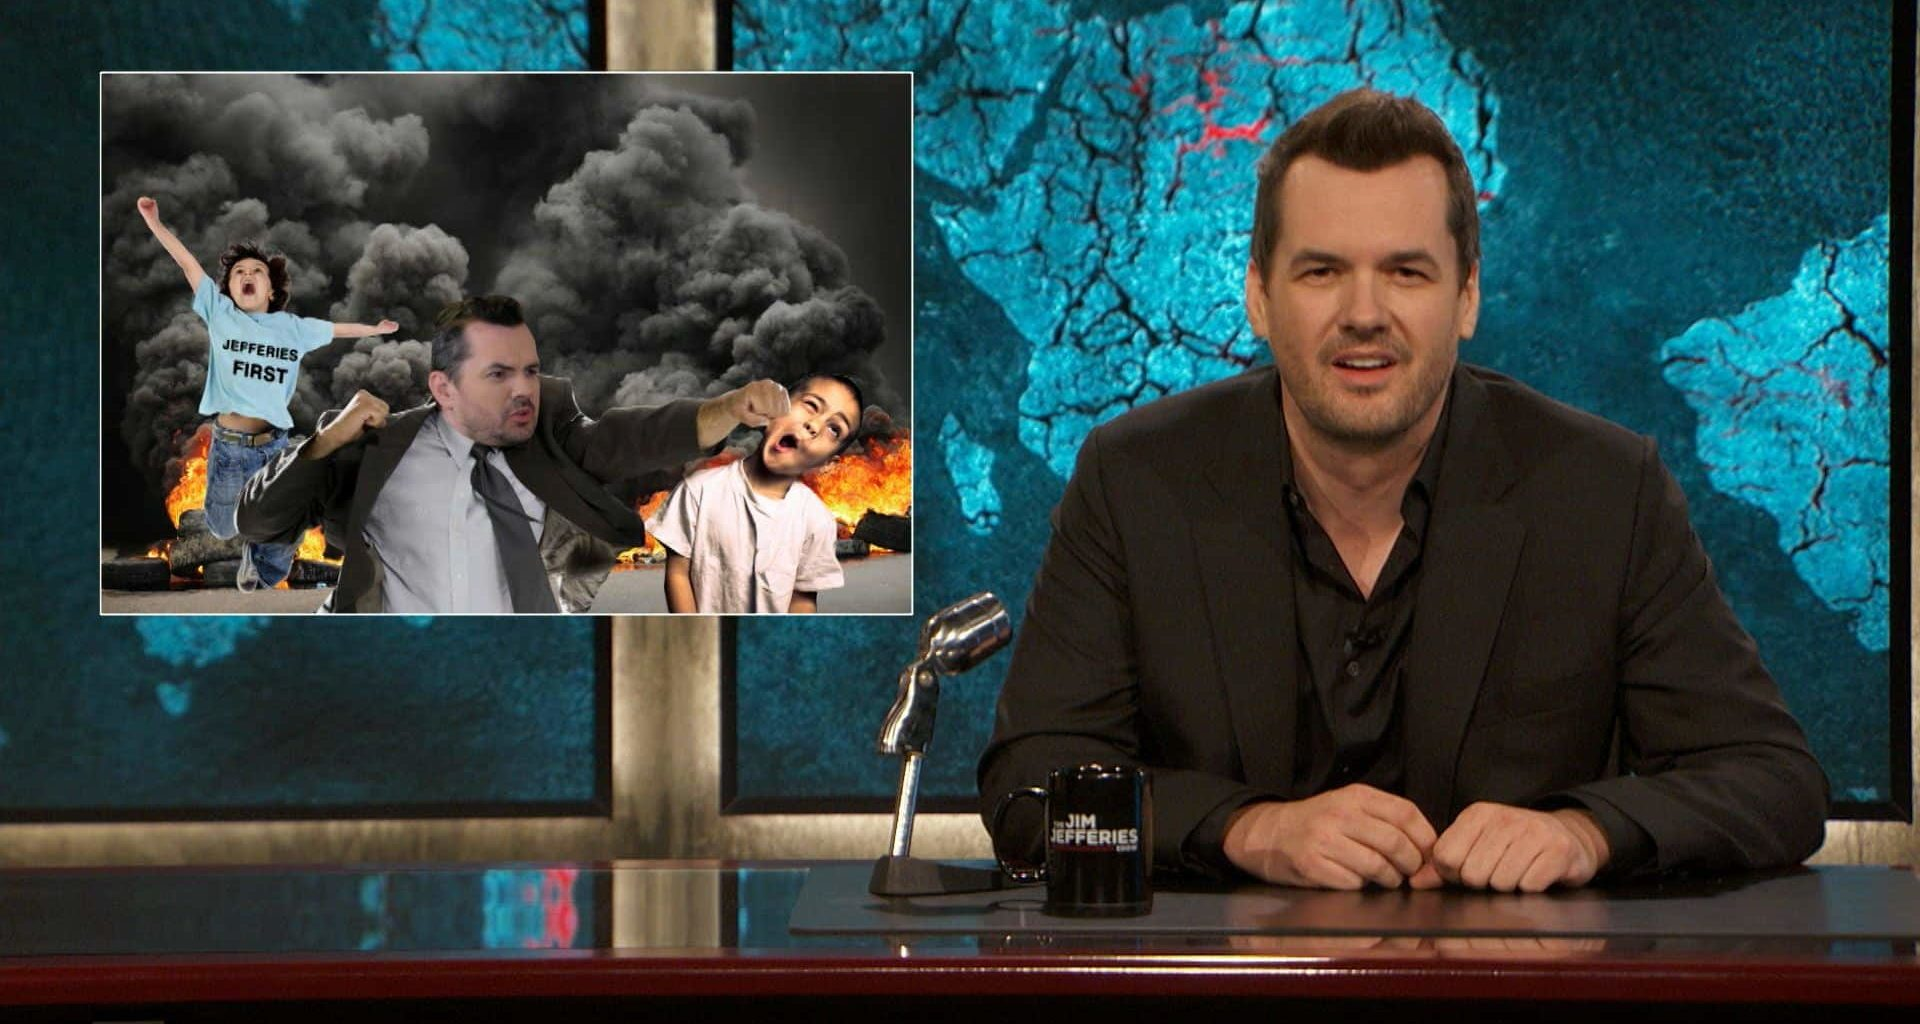 Drop What You're Doing and Watch the Jim Jefferies Show Right Now